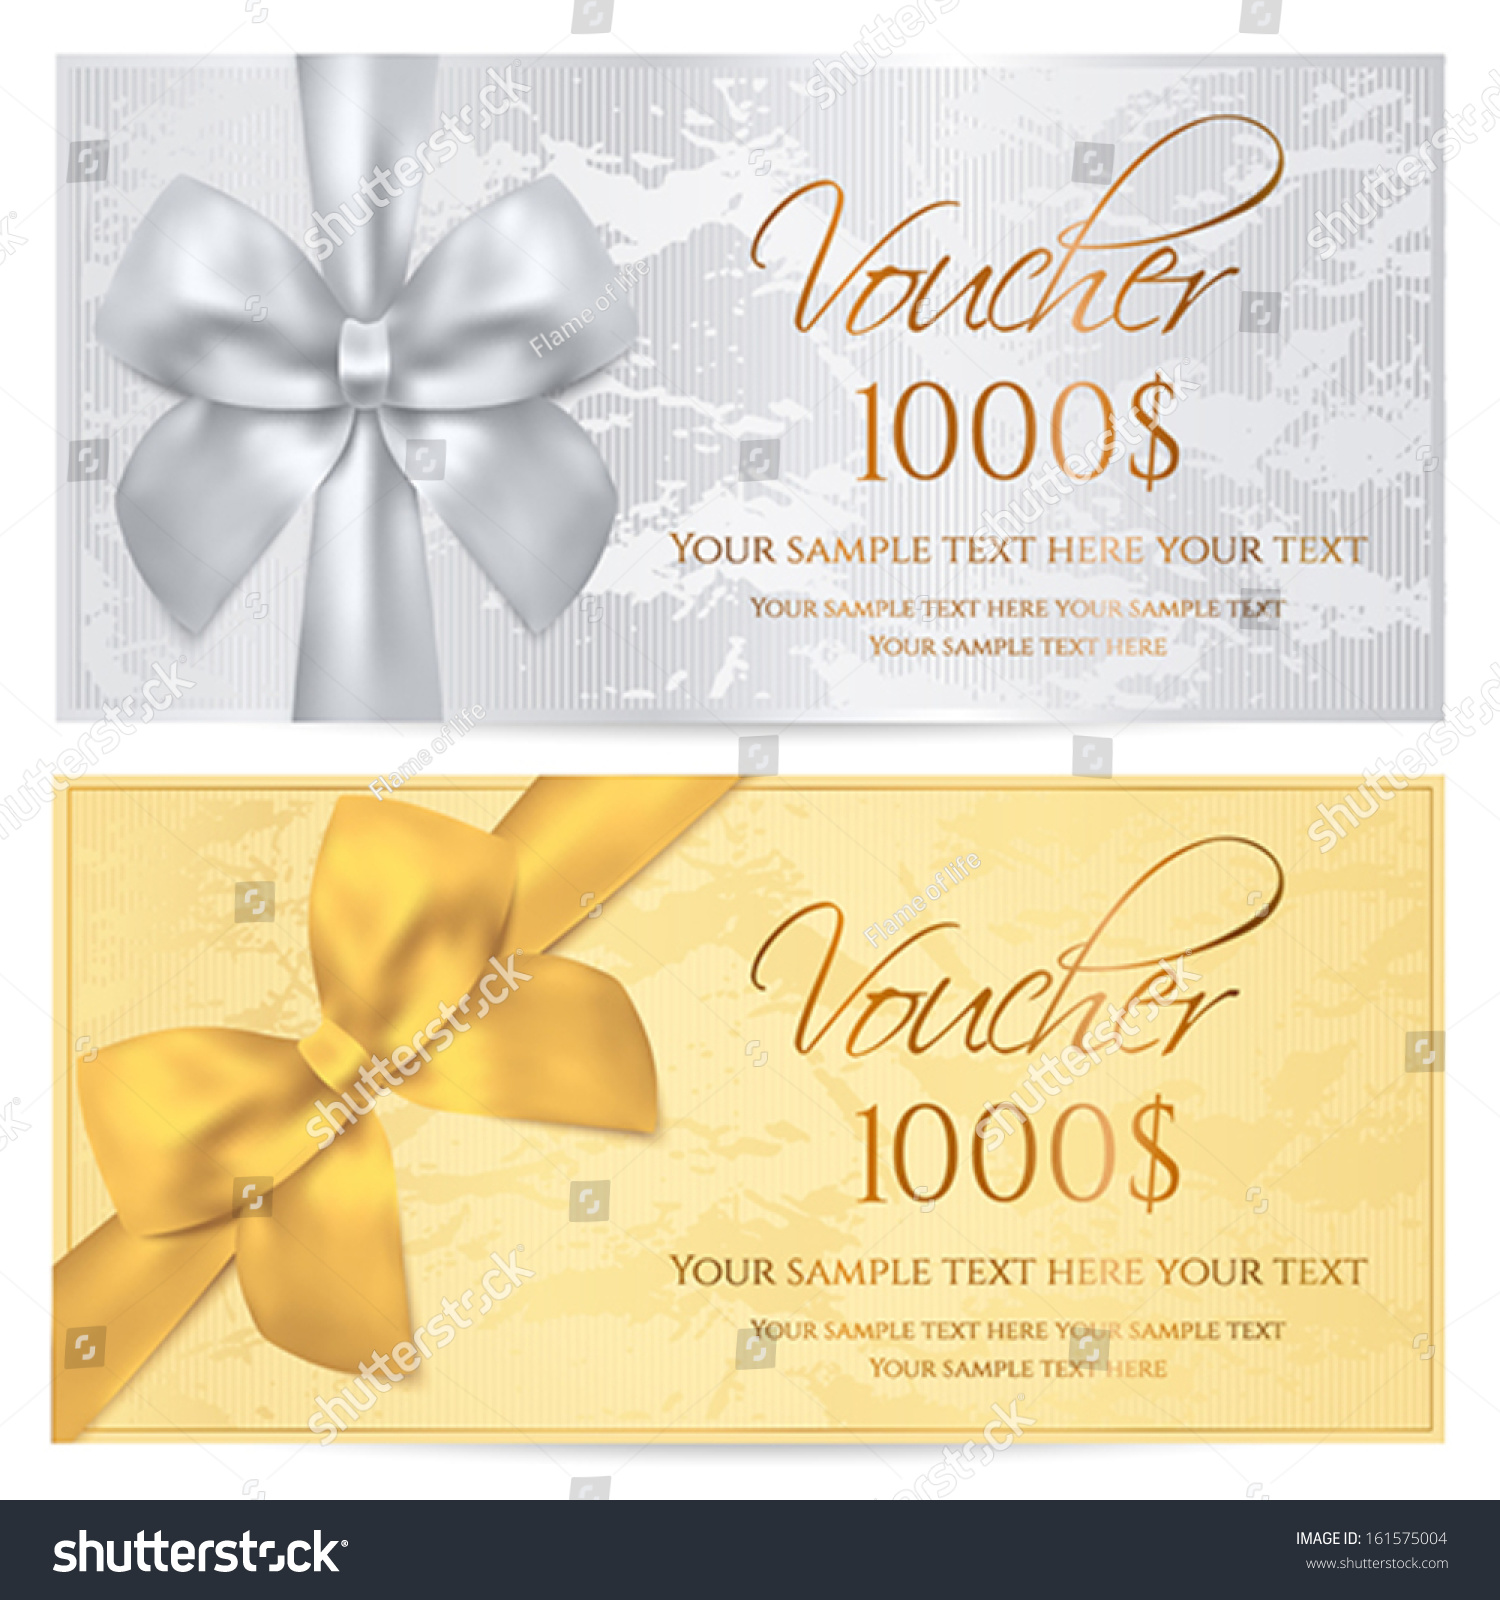 cheque voucher template - voucher gift certificate coupon template old pattern